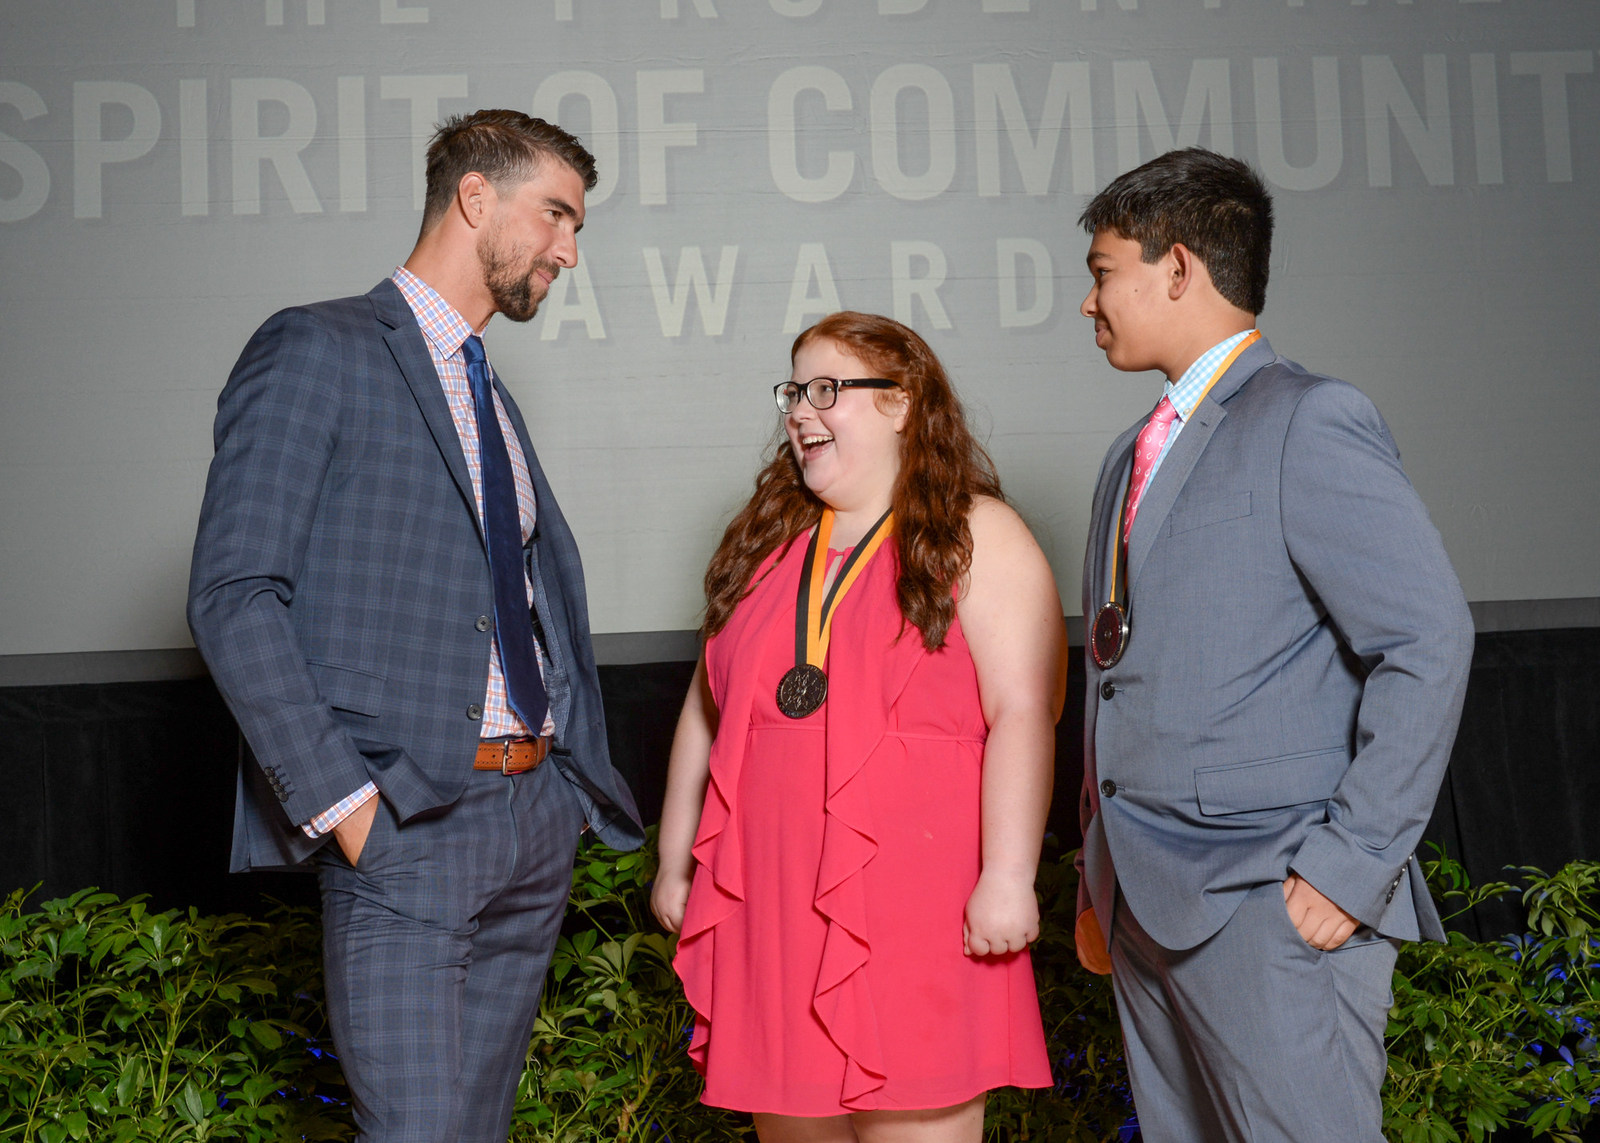 Olympic gold medalist Michael Phelps congratulates Anna-Maria Beck, 17 (center) and Andrew Dunn, 14 (right), both of Louisville, on being named Kentucky's top two youth volunteers for 2017 by The Prudential Spirit of Community Awards.